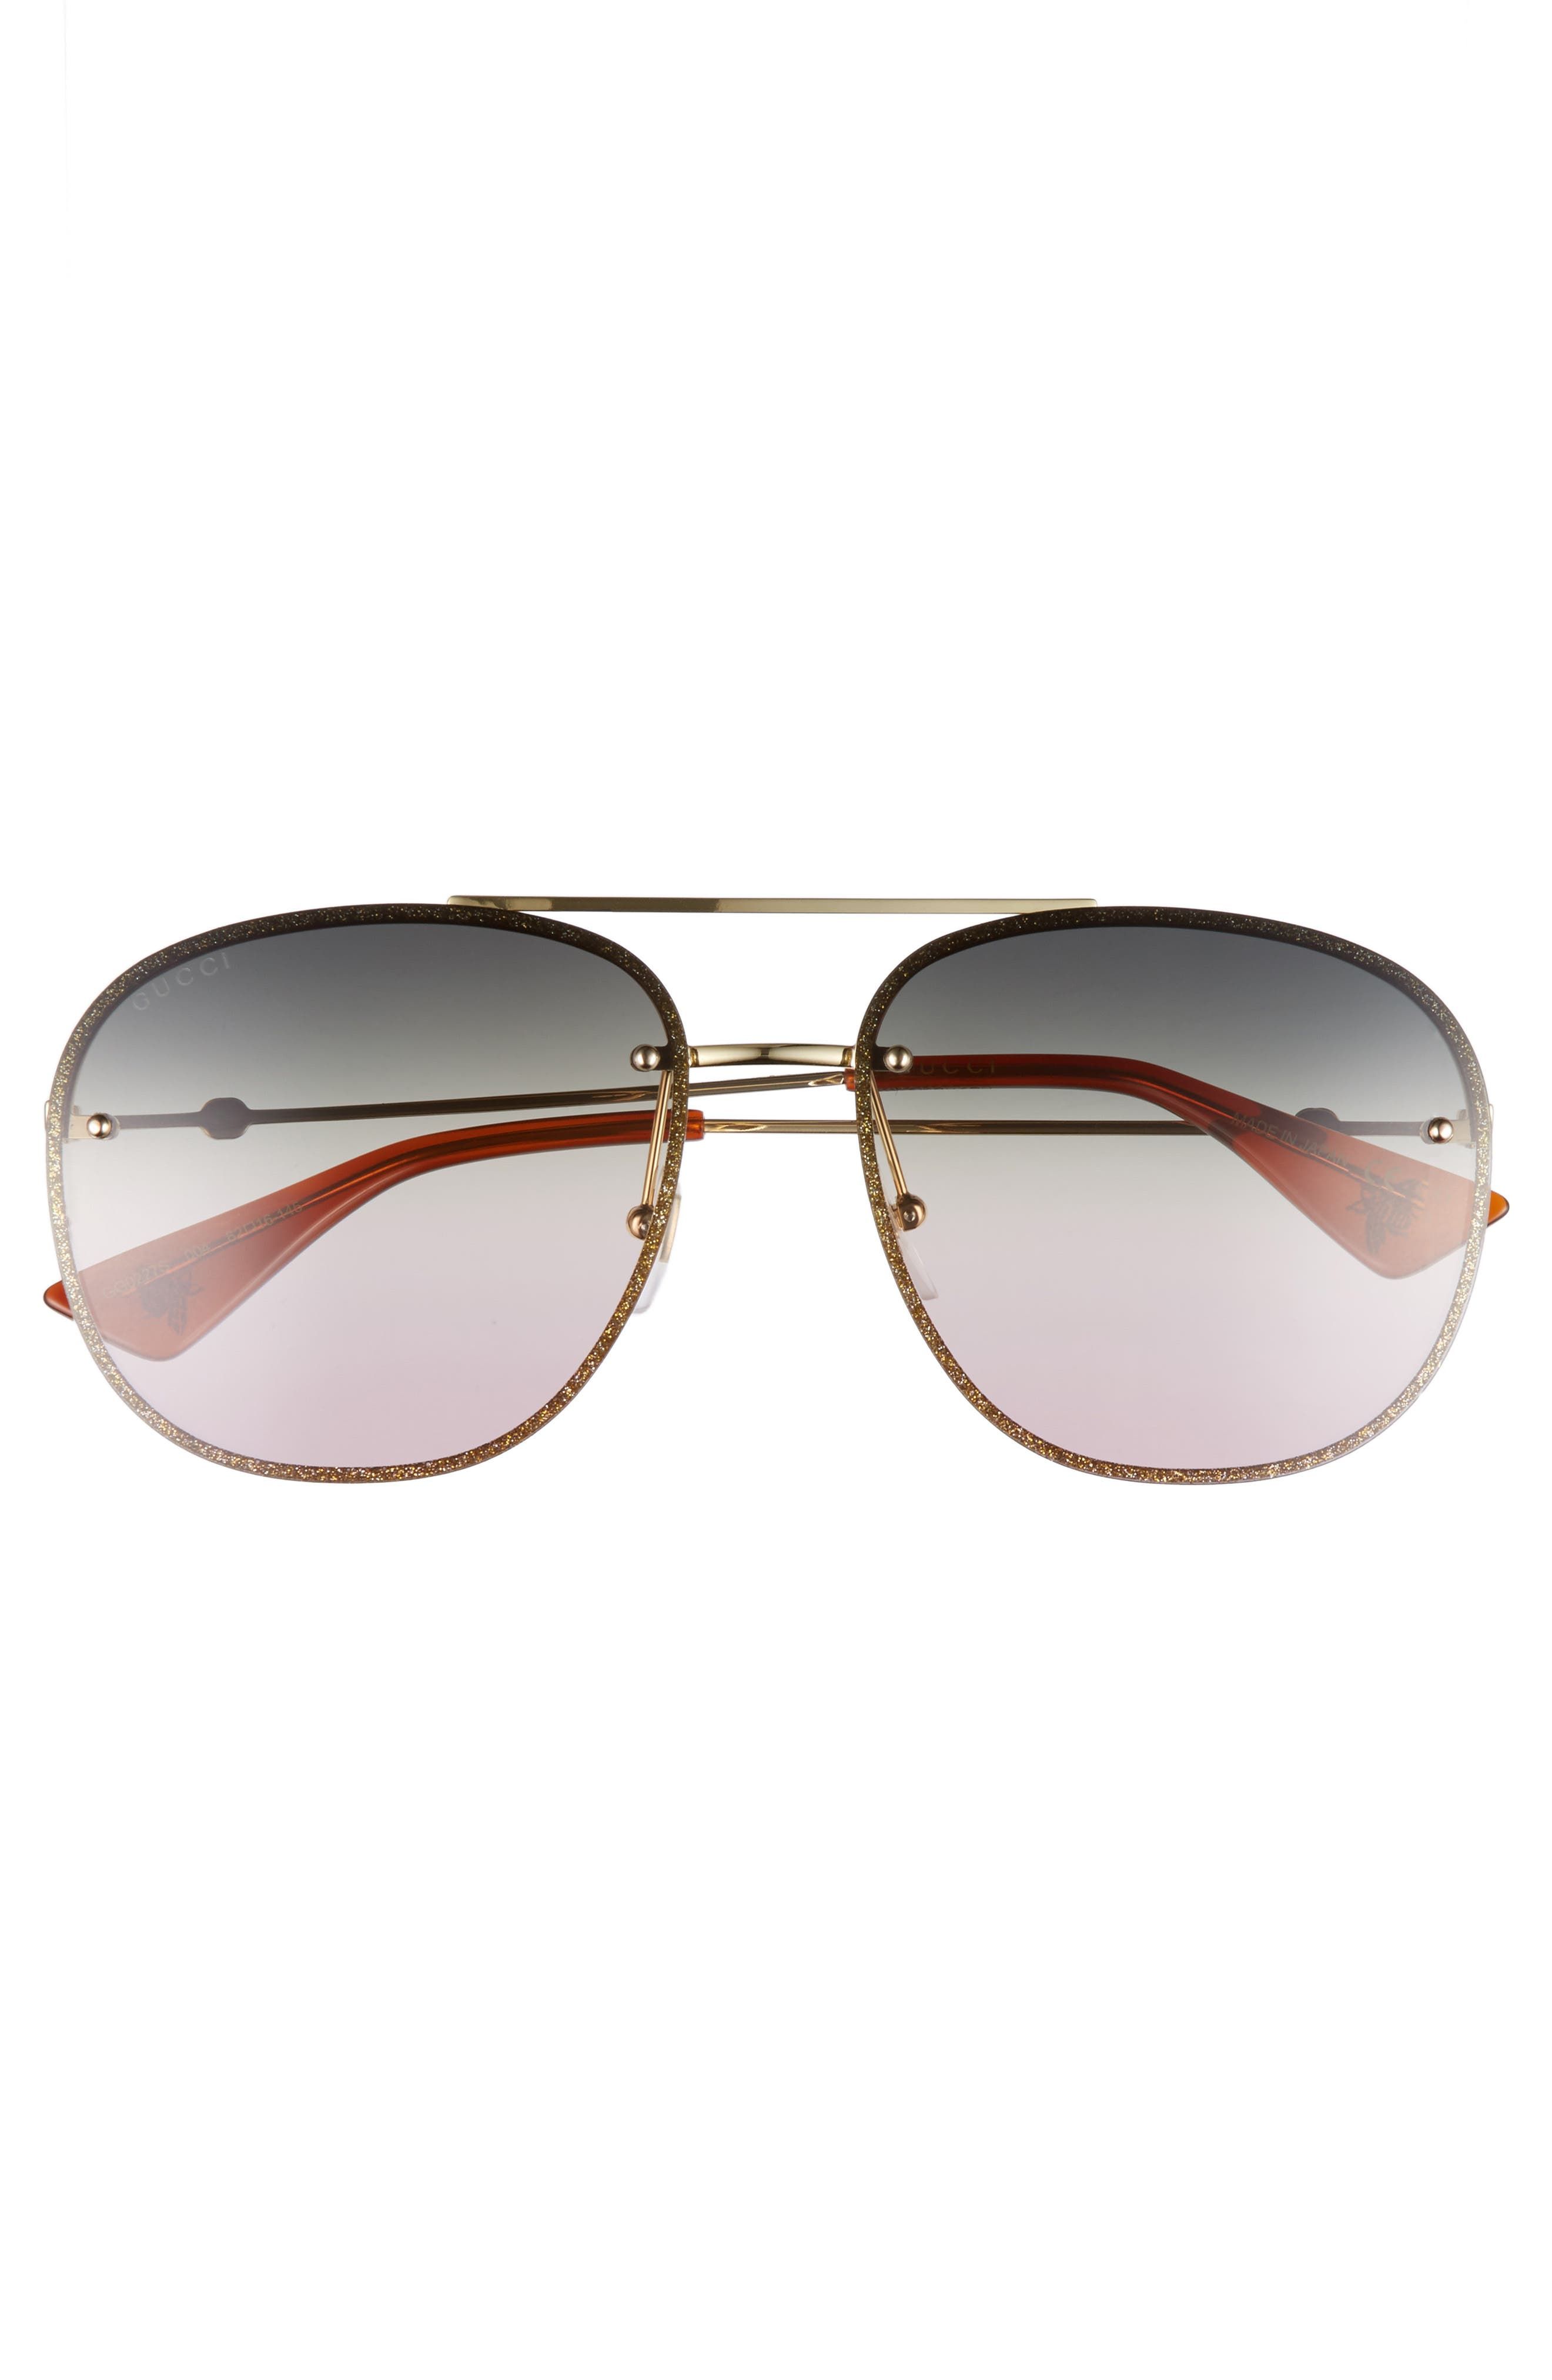 62mm Oversize Aviator Sunglasses,                             Alternate thumbnail 3, color,                             GOLD/ GREEN/ YELLOW/ NUDE